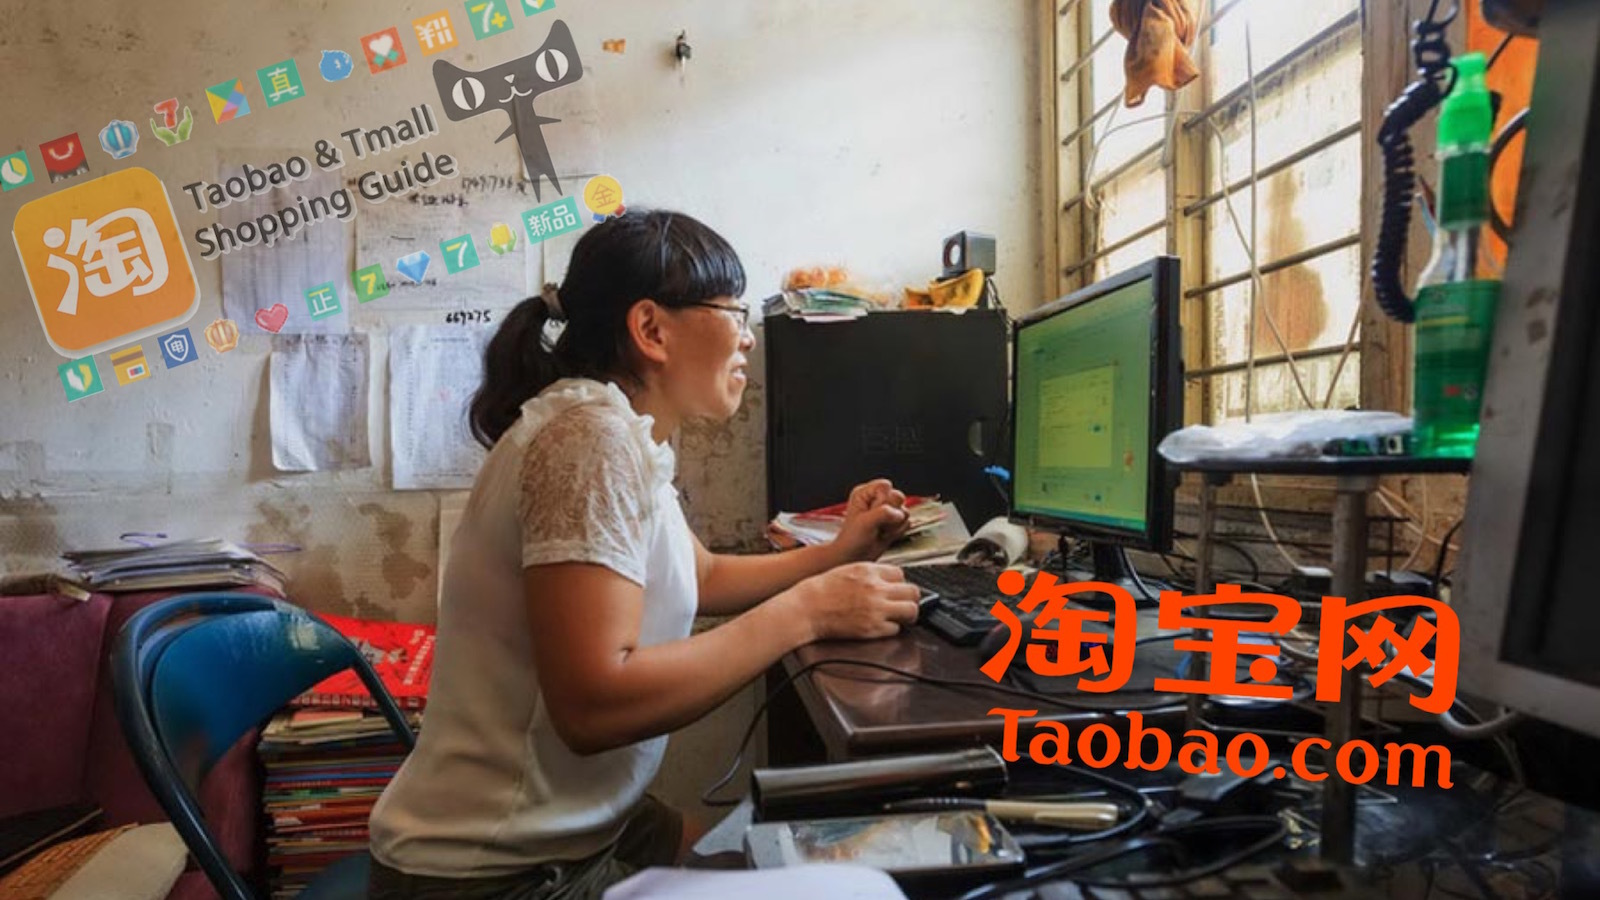 C-to-C Internet Commerce-From Taobao Shops to Taobao Villages